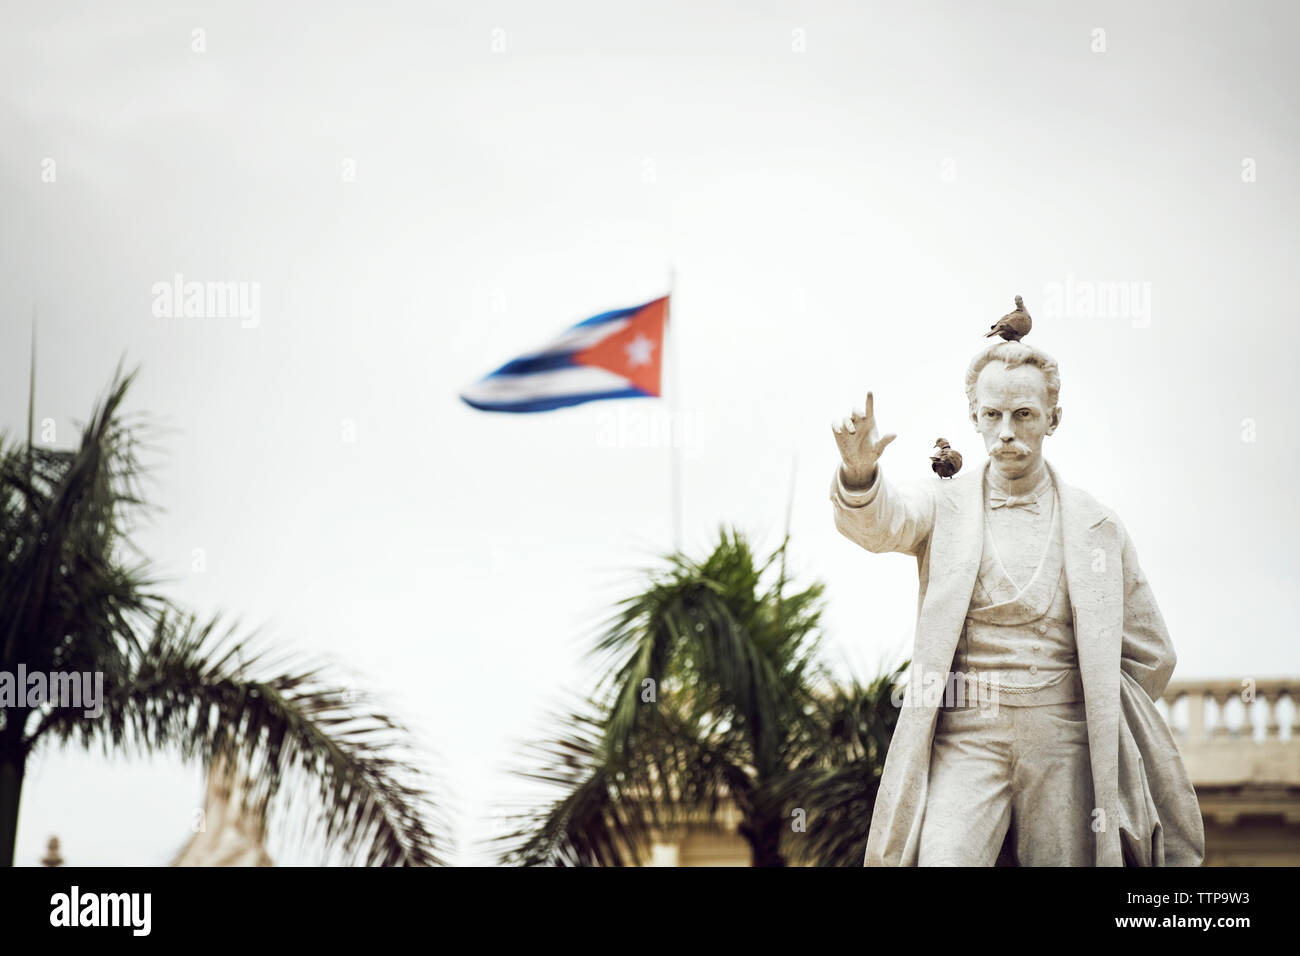 Birds perching on Jose Marti Statue against Cuban flag - Stock Image